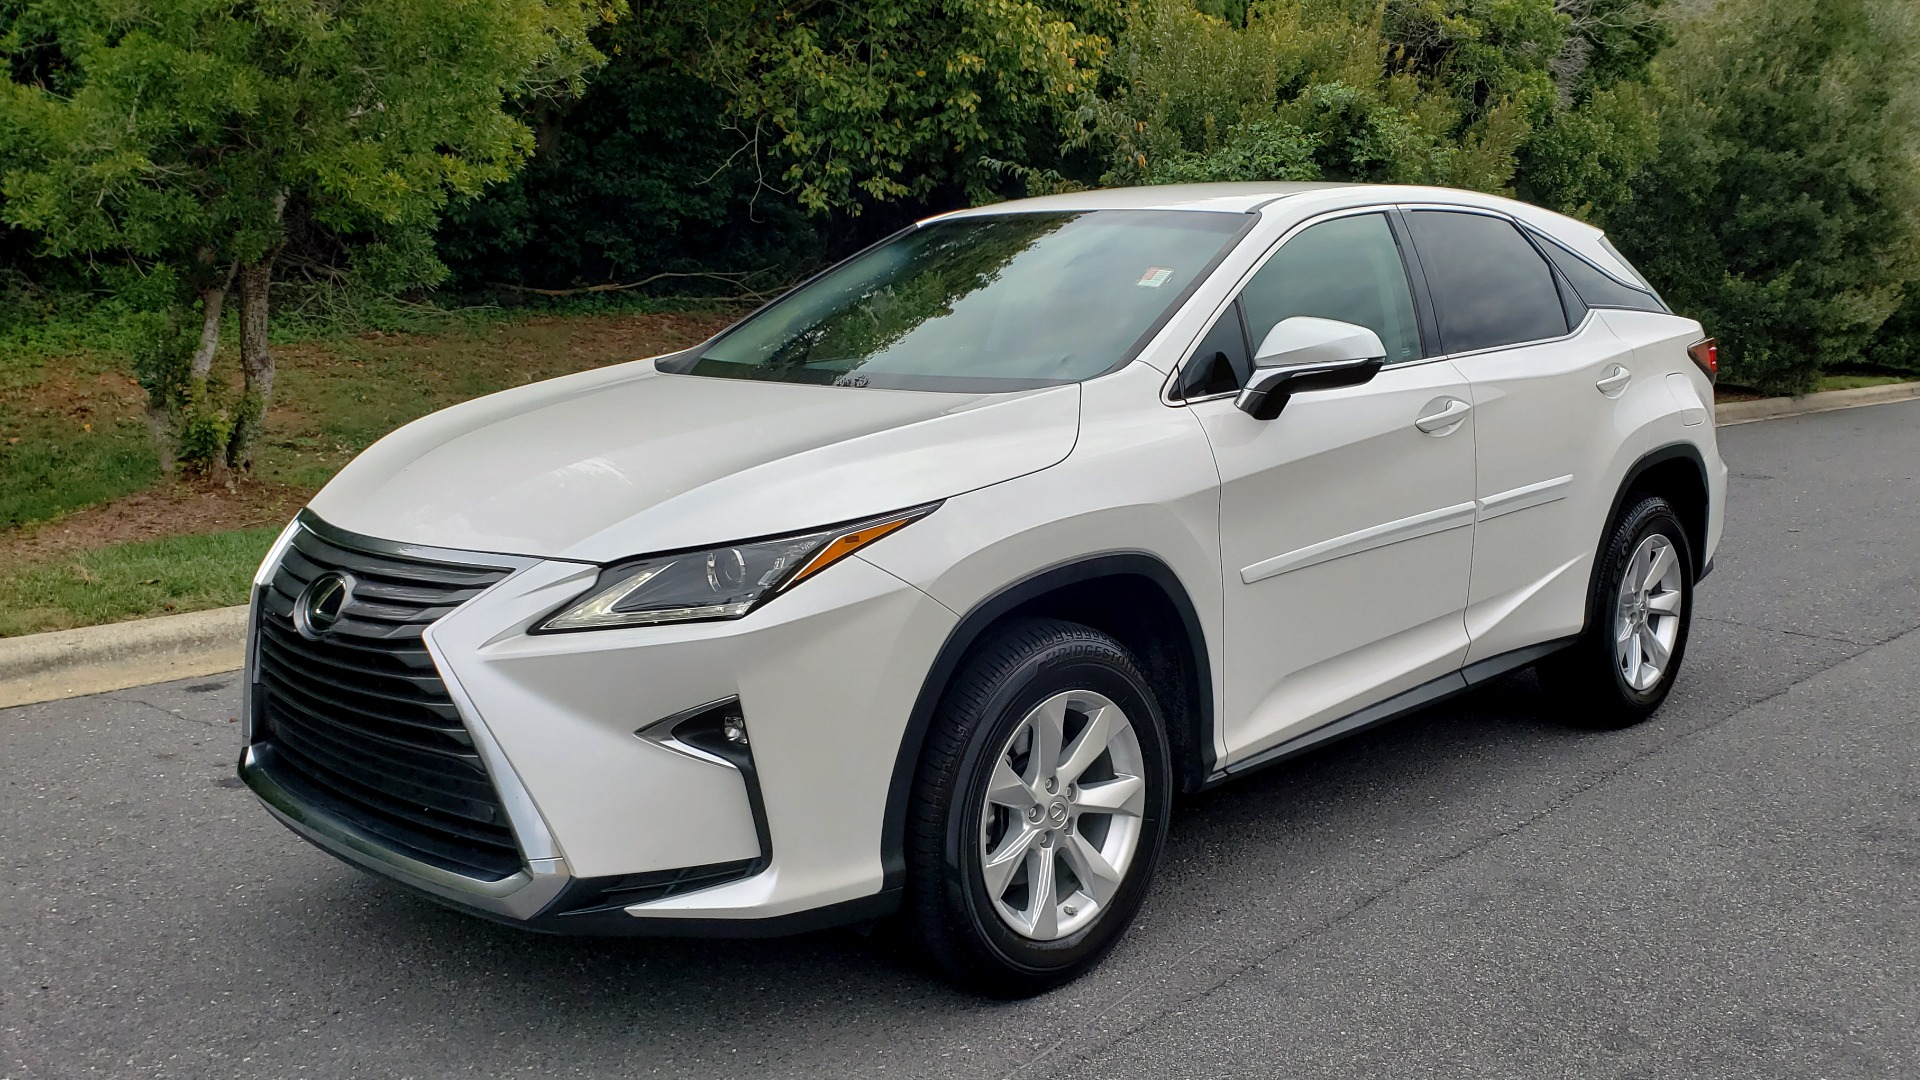 Used 2016 Lexus RX 350 FWD / 4-DR / 3.5L V6 / 8-SPD AUTO / LEATHER / REARVIEW for sale $31,995 at Formula Imports in Charlotte NC 28227 4